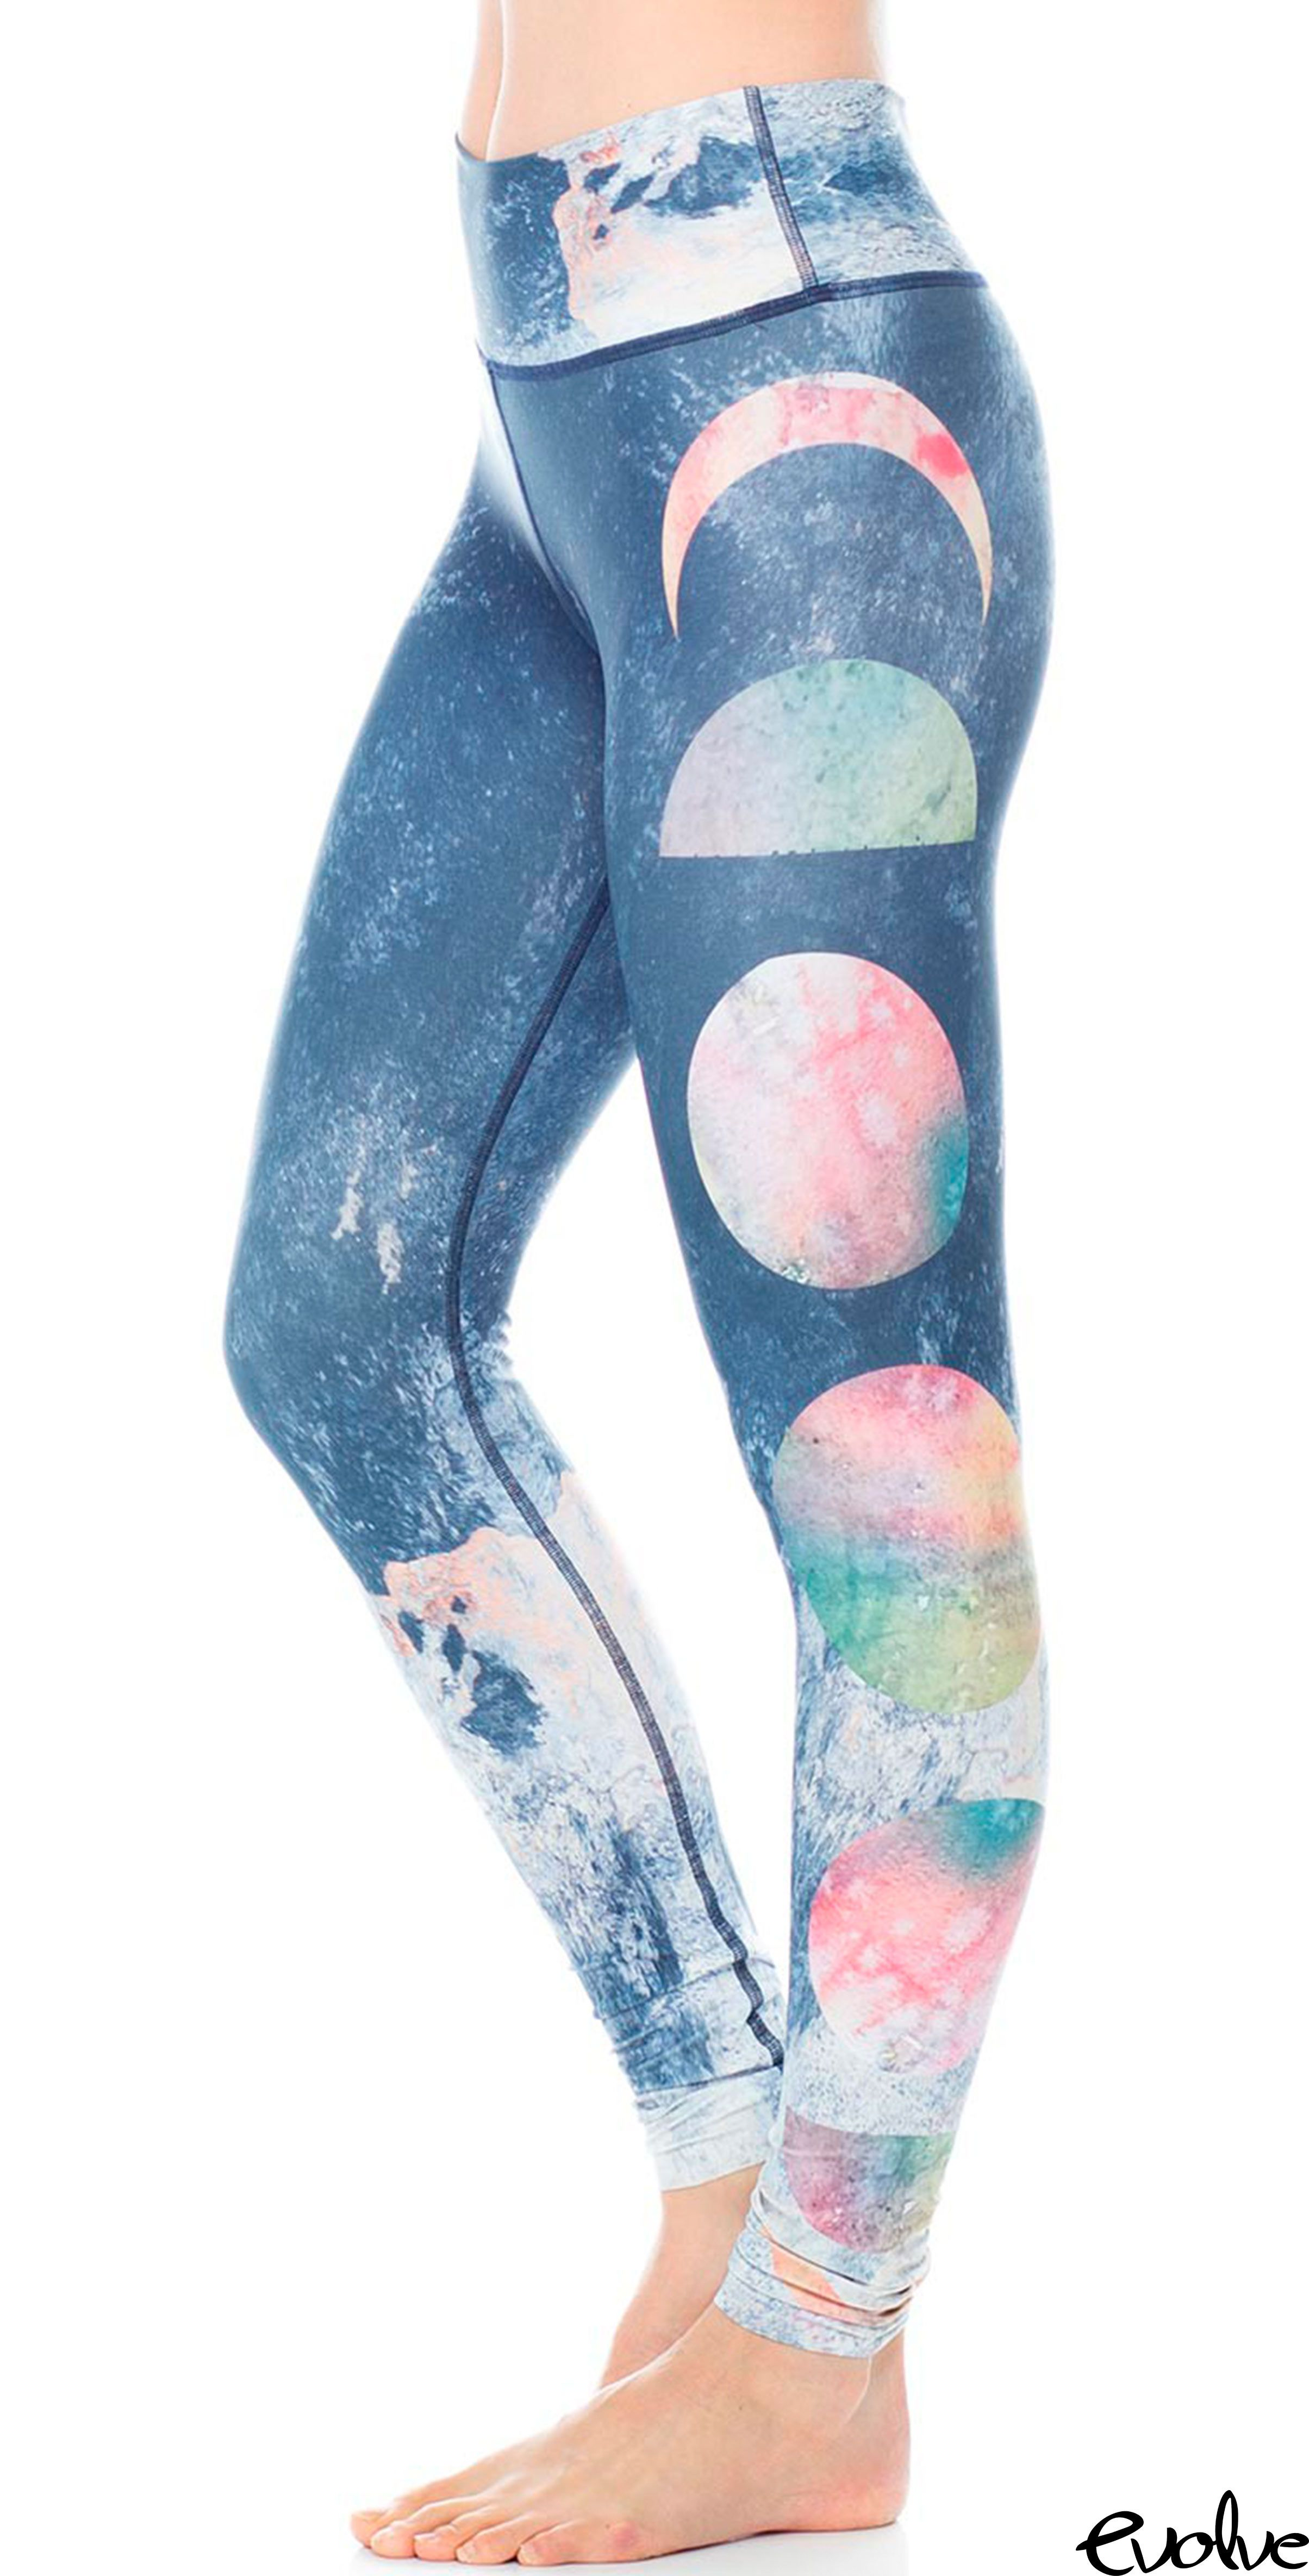 fc29ac4c3131b0 Ground yourself and your practice with these moon phase leggings from Jiva! Shop  now at www.evolvefitwear.com.